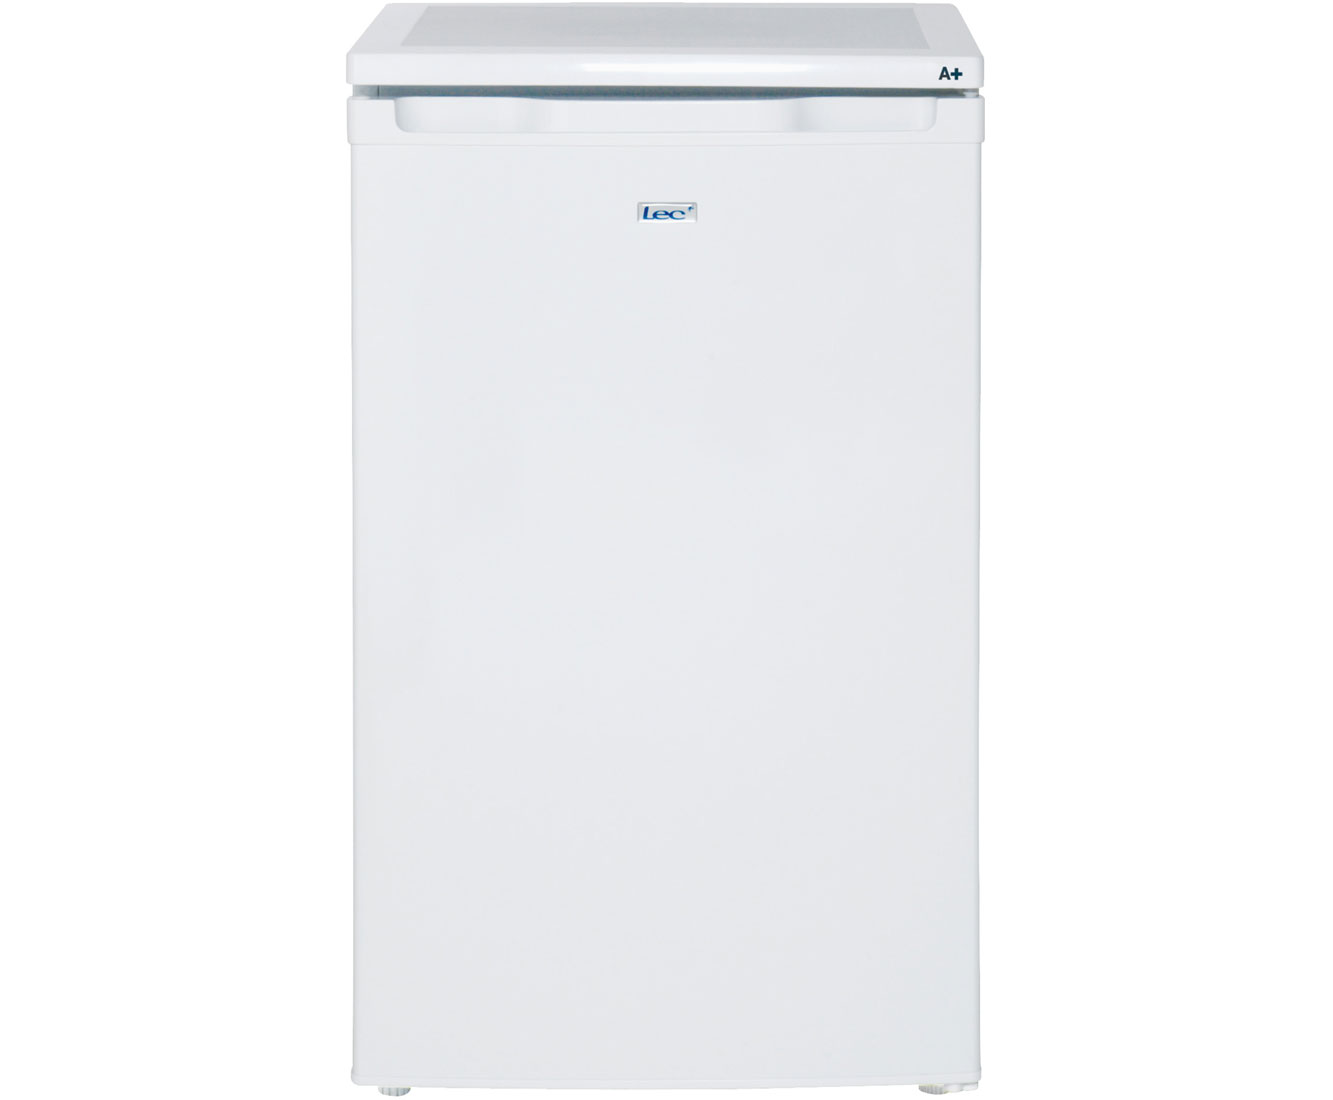 Lec L5010W Fridge - White